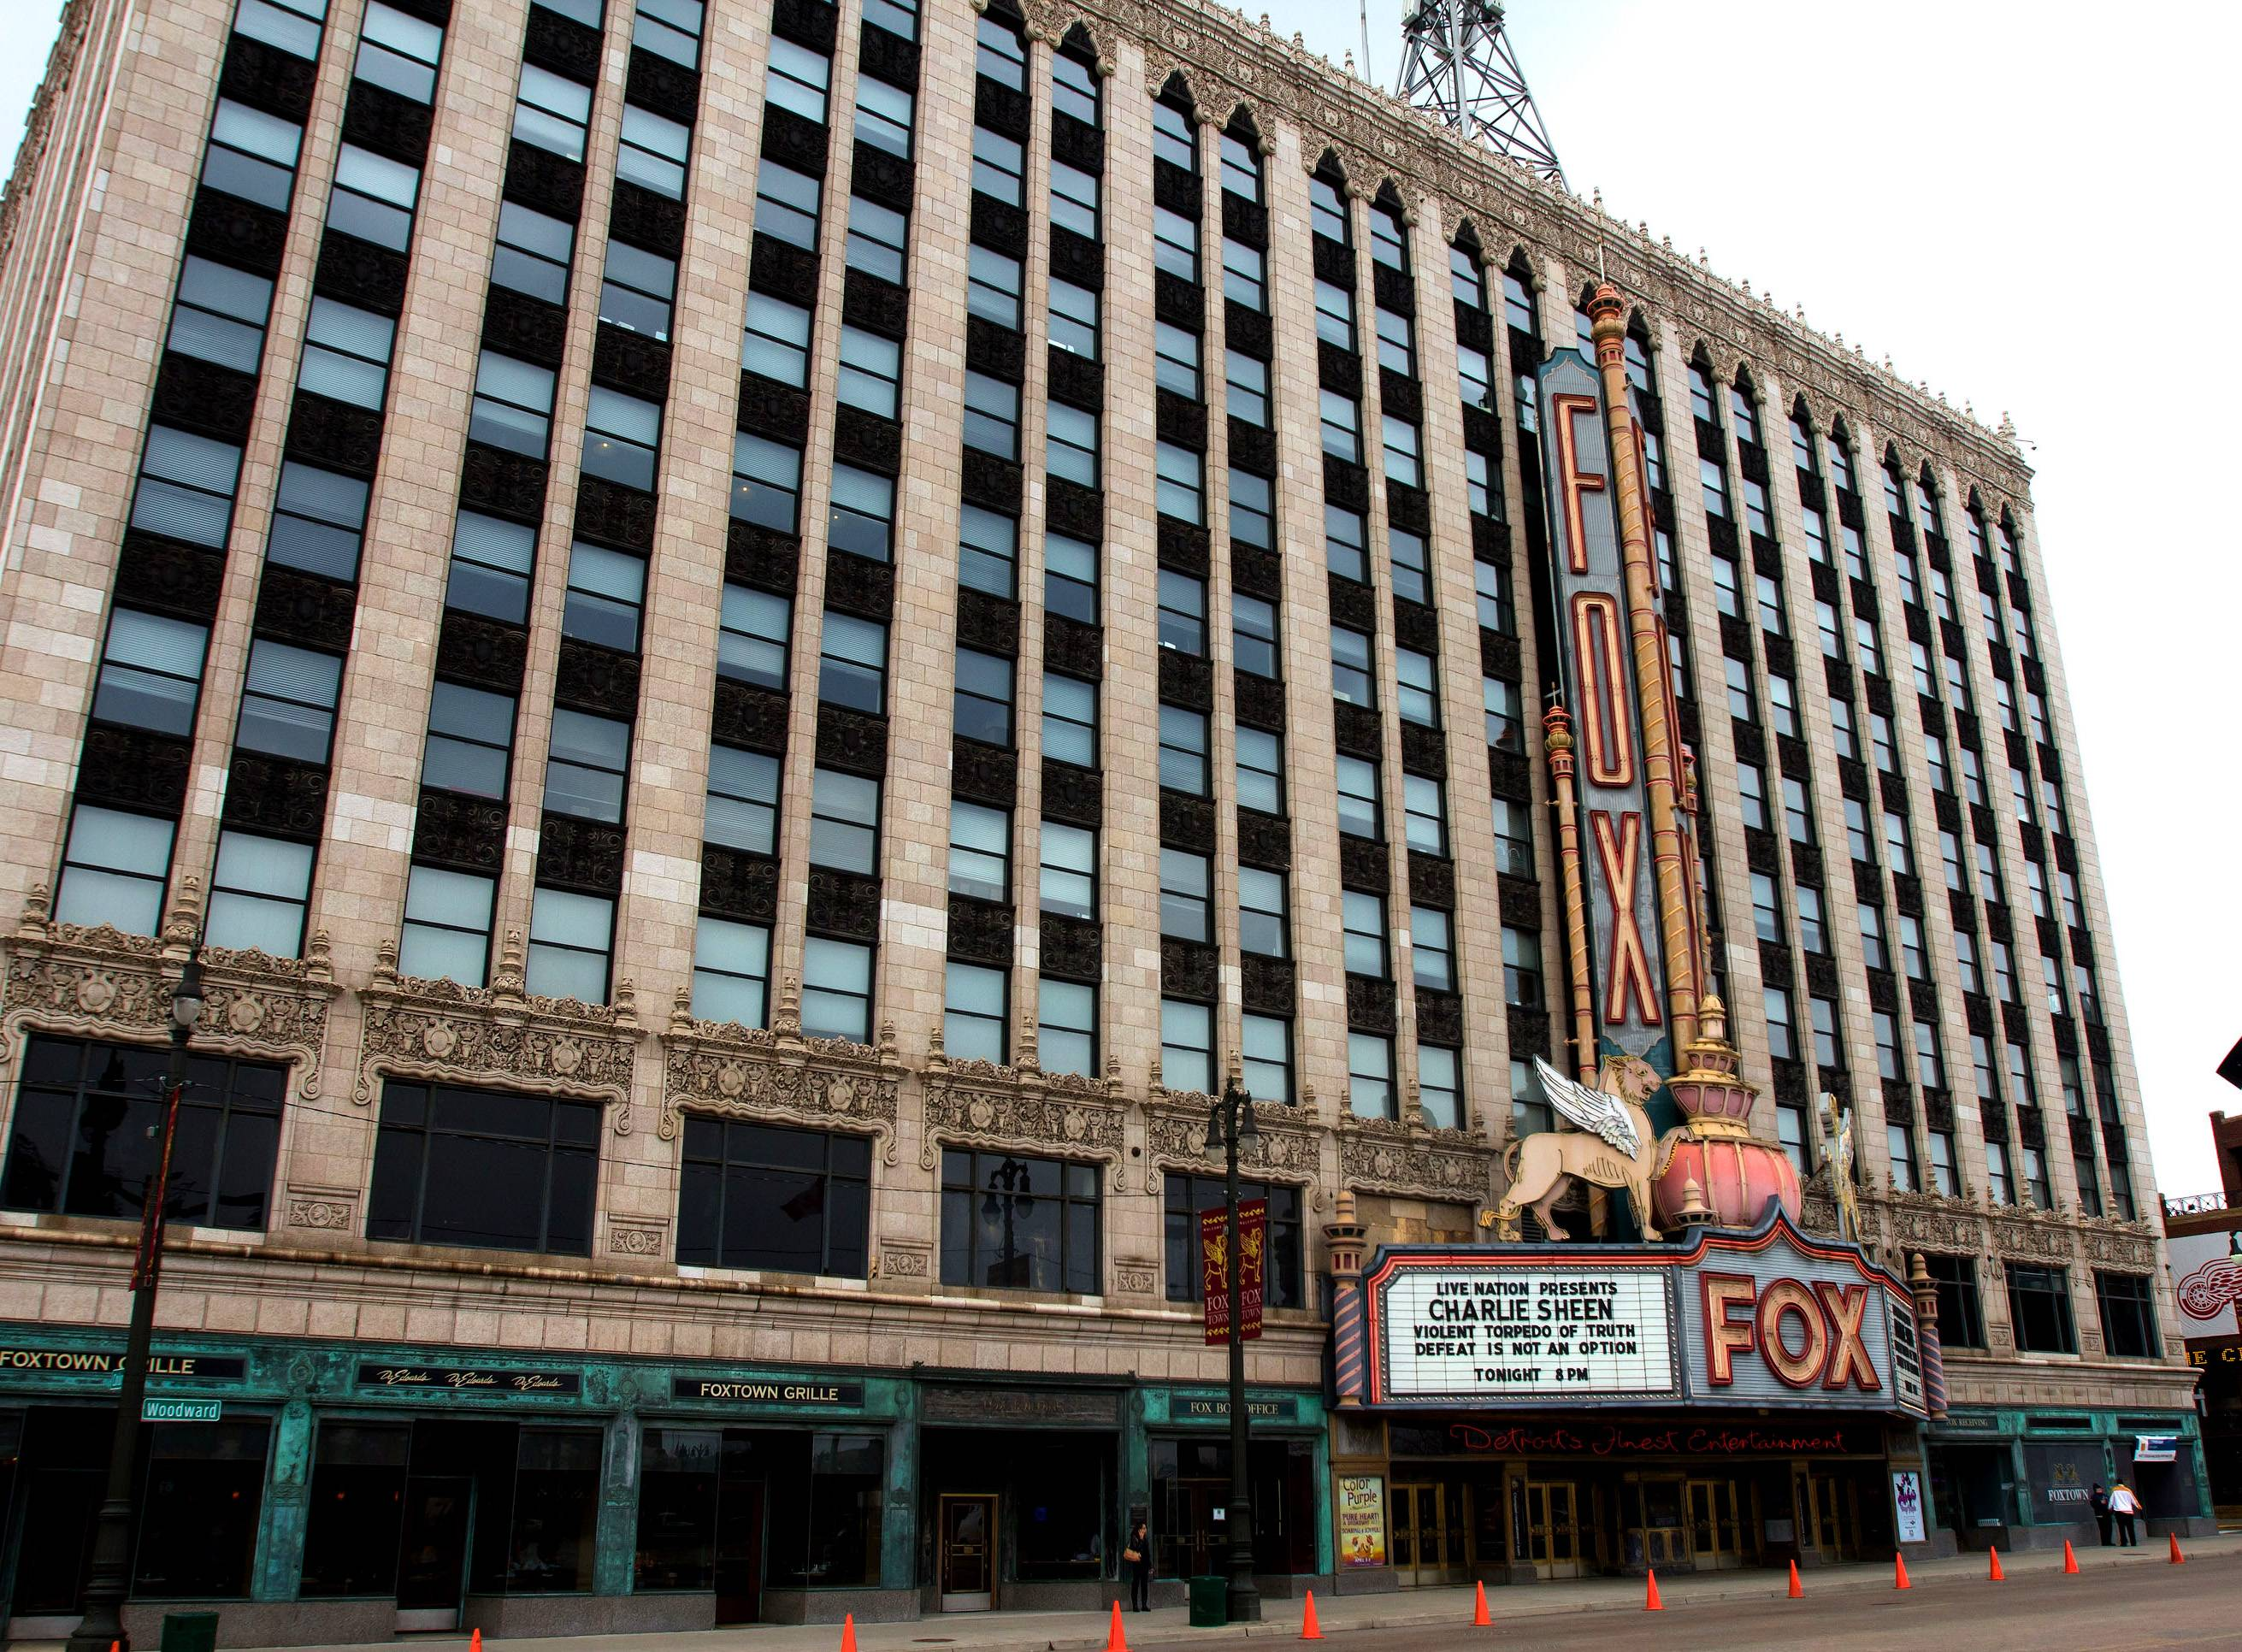 040212-shows-lets-stay-together-detroit-honeymoon-fox-theatre.jpg